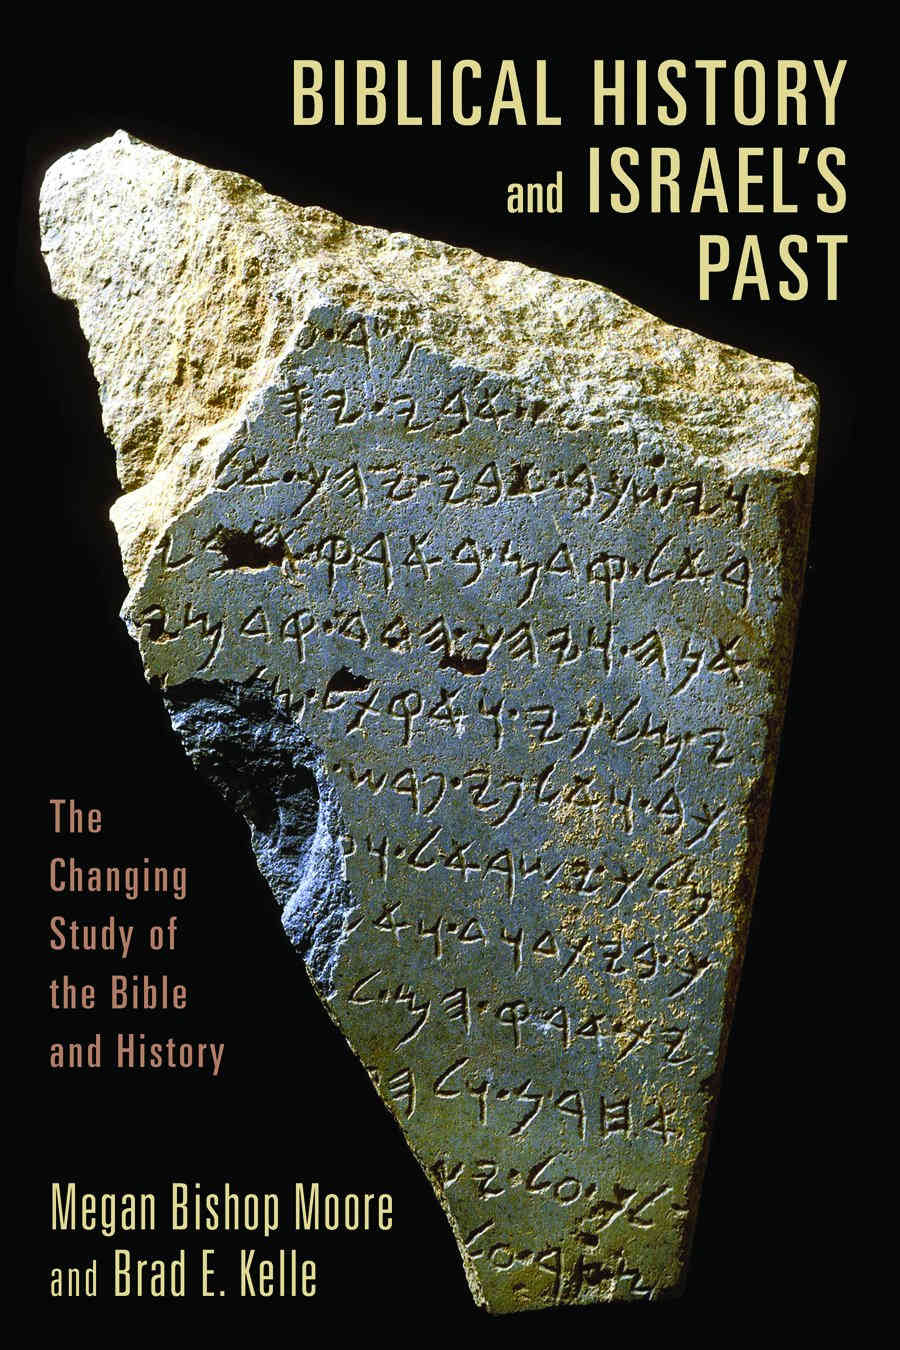 MOORE, M. B.; KELLE, B. E. Biblical History and Israel's Past: The Changing Study of the Bible and History. Grand Rapids, MI: Eerdmans, 2011, xvii + 518 p.